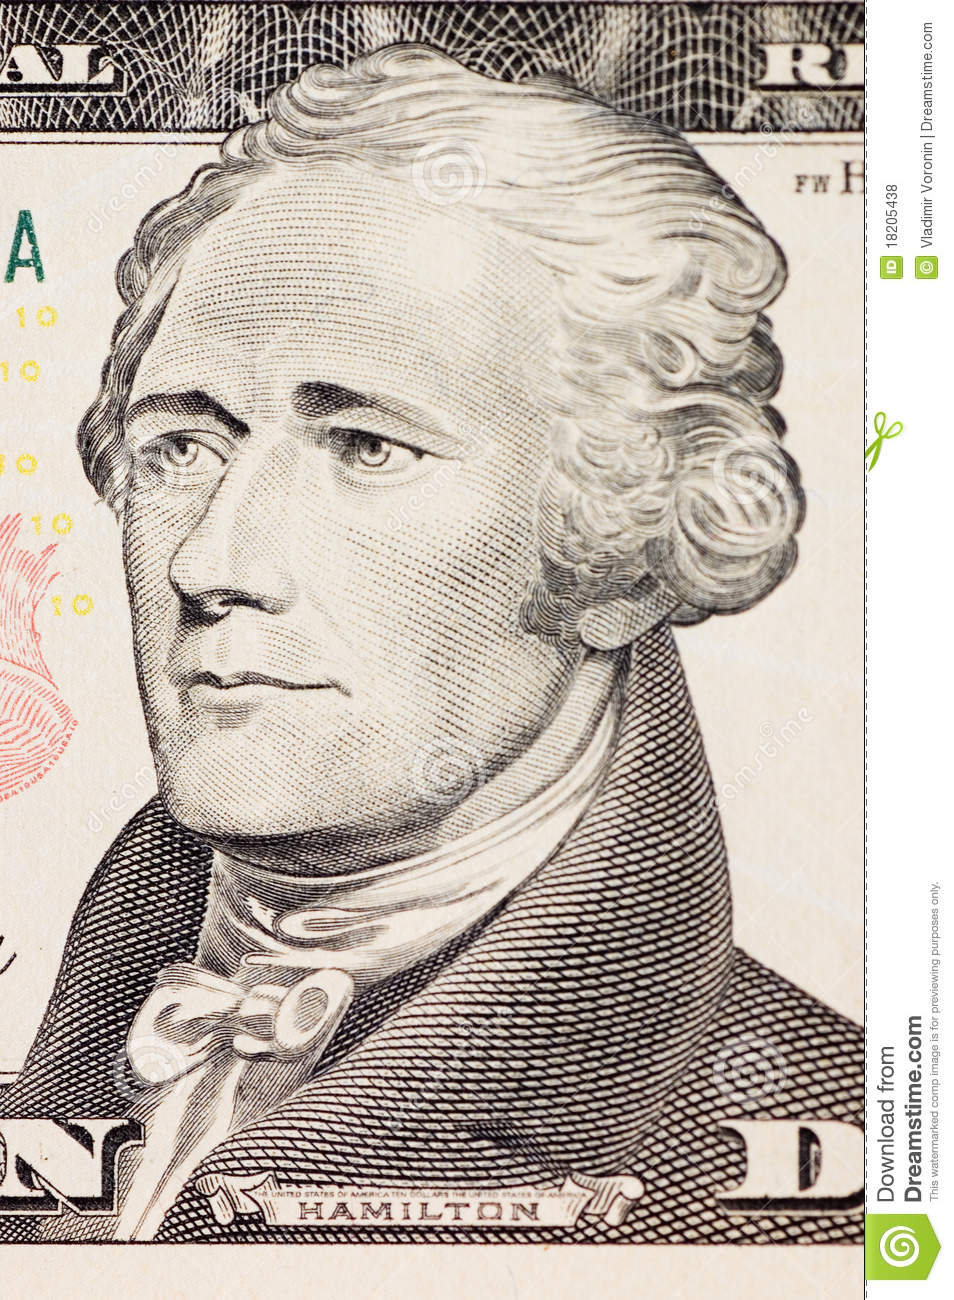 Hamilton (AL) United States  City pictures : President Hamilton Face On The Ten Dollar Bill Royalty Free Stock ...